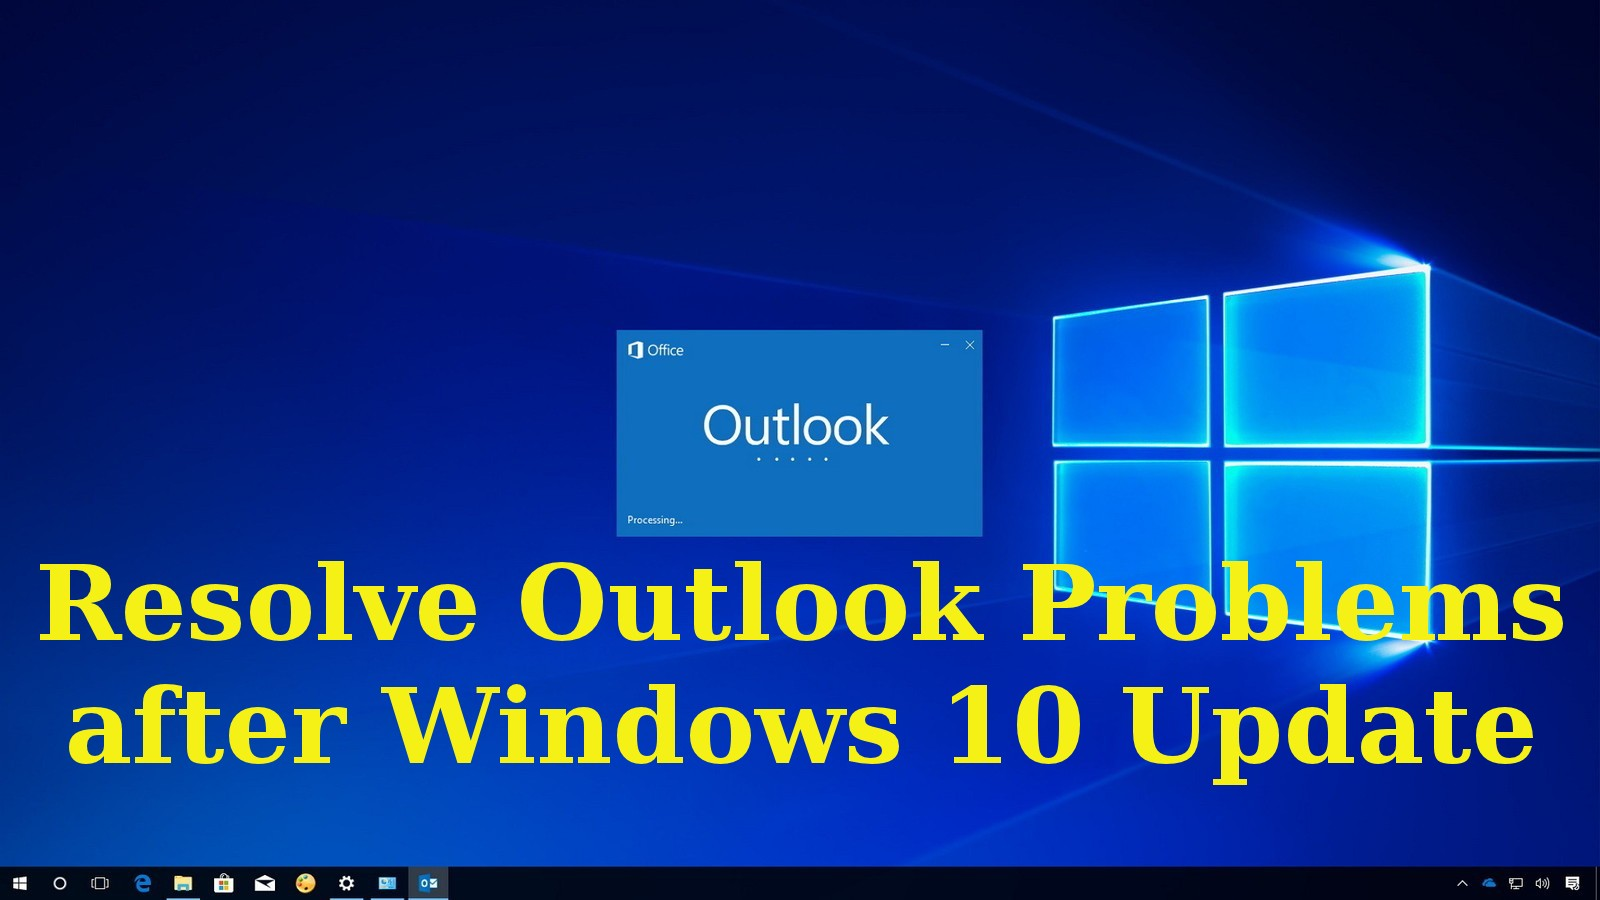 Resolve Outlook Problems after Windows 10 Update